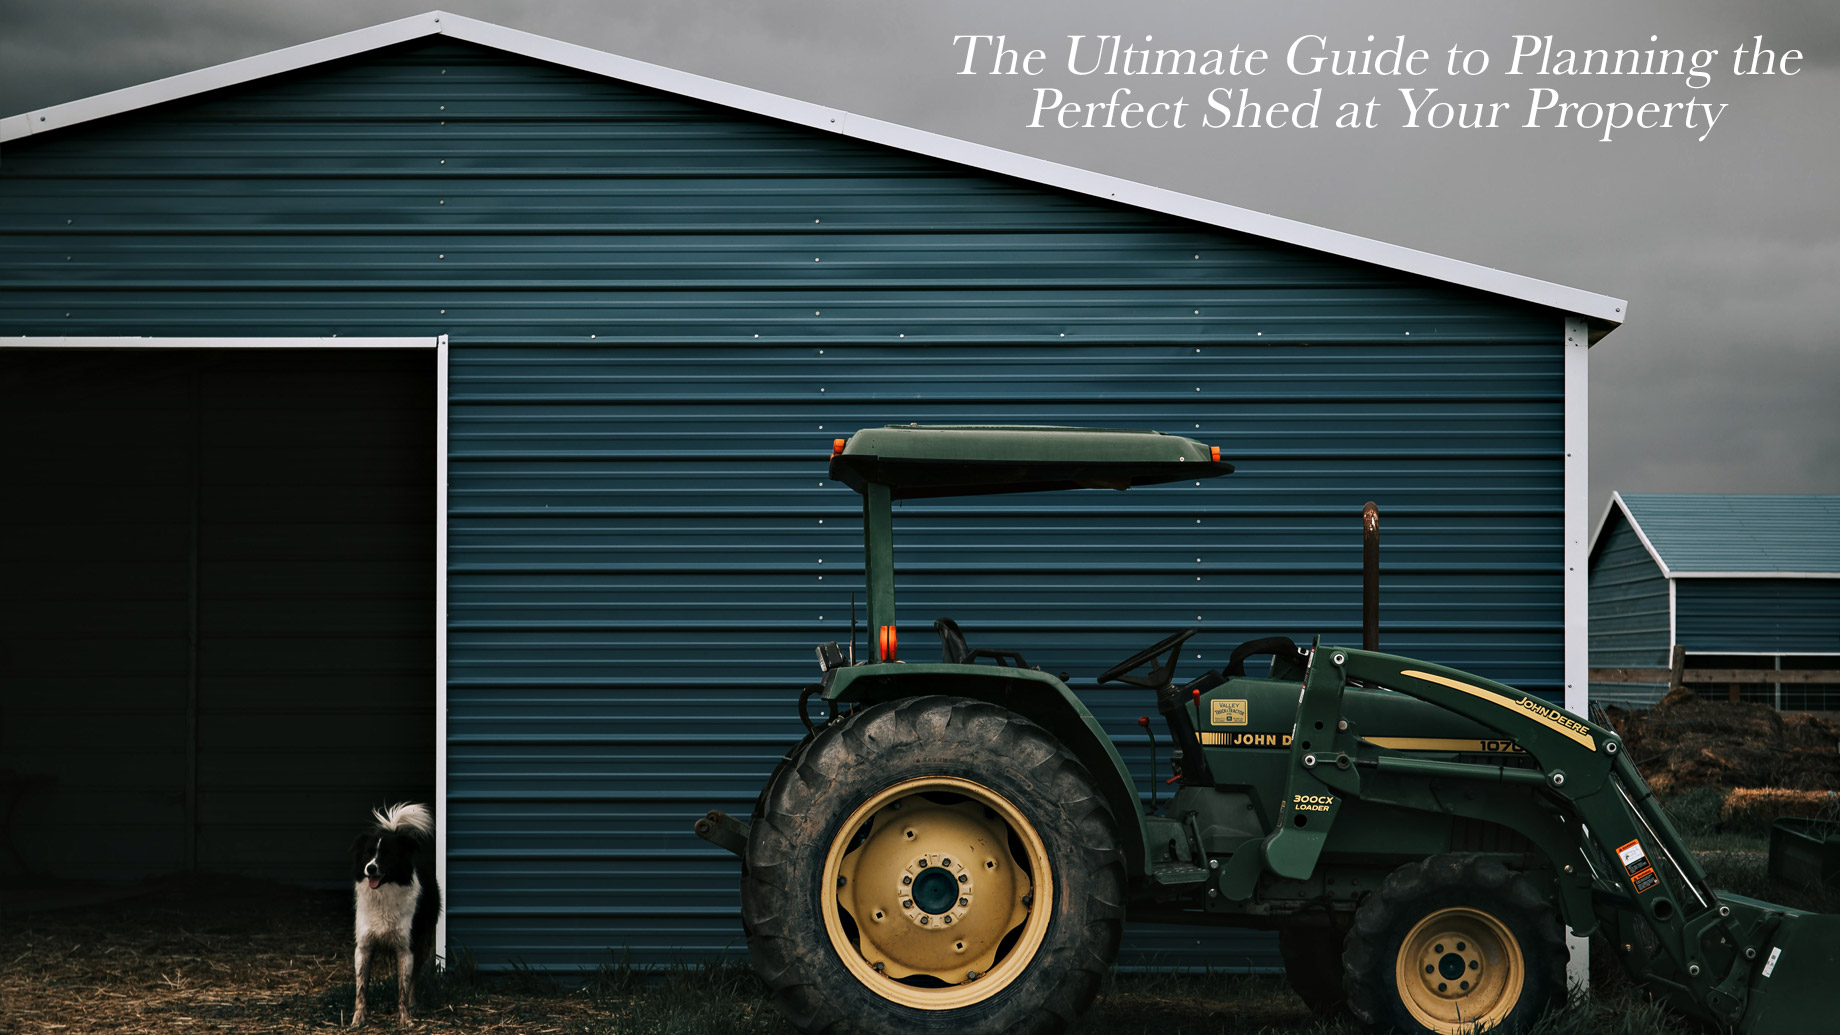 The Ultimate Guide to Planning the Perfect Shed at Your Property